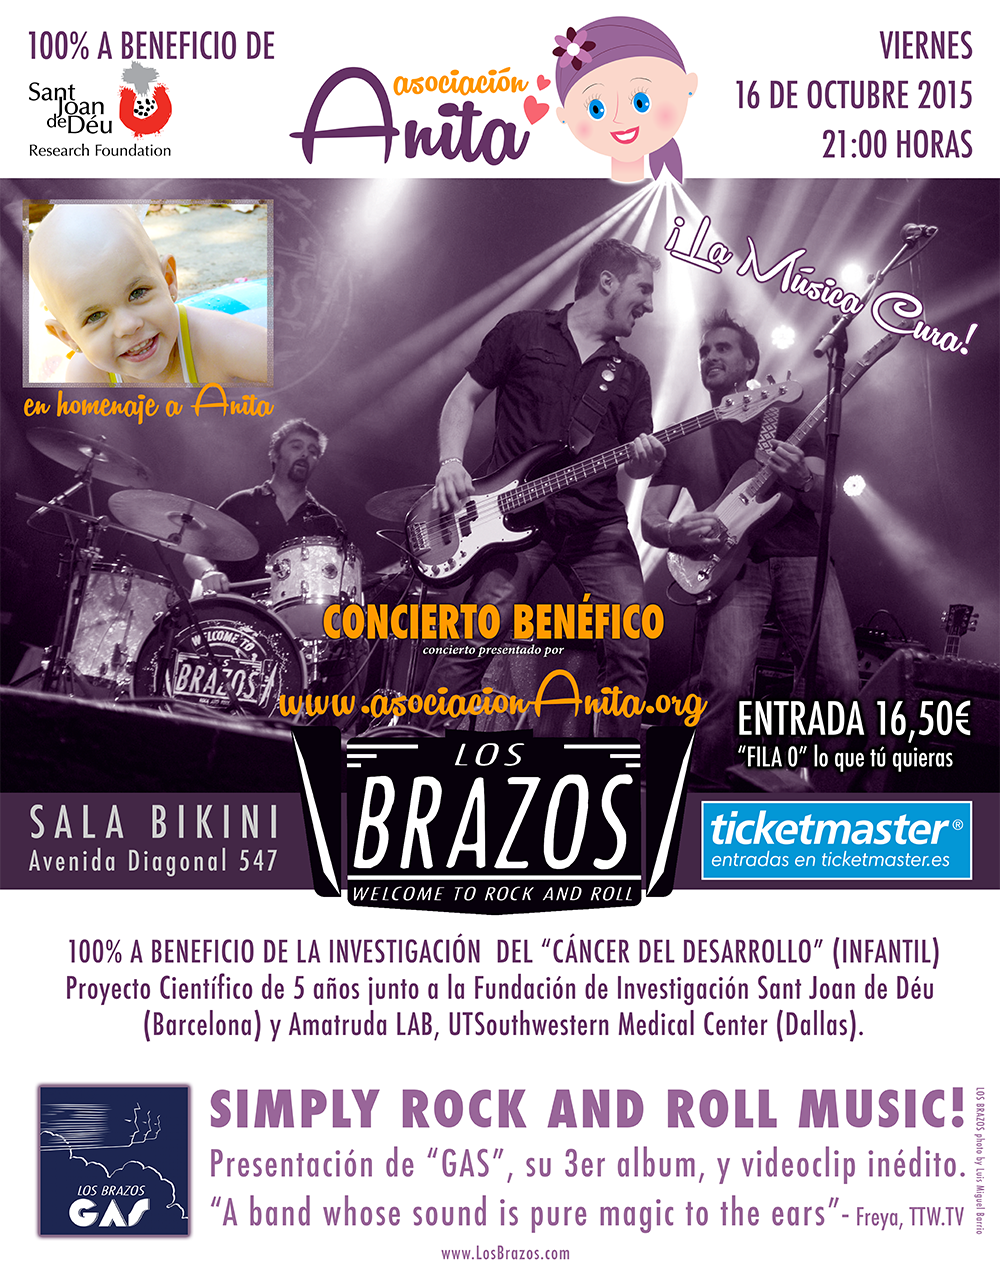 asociacion-anita-concierto-benefico-los-brazos-barcelona-sala-bikini-16-octubre-2015-investigacion-tumor-celulas-germinales-germ-cell-tumor-research-jaume-mora-james-amatruda-lab-sant-joan-de-deu-barcelona-dallas